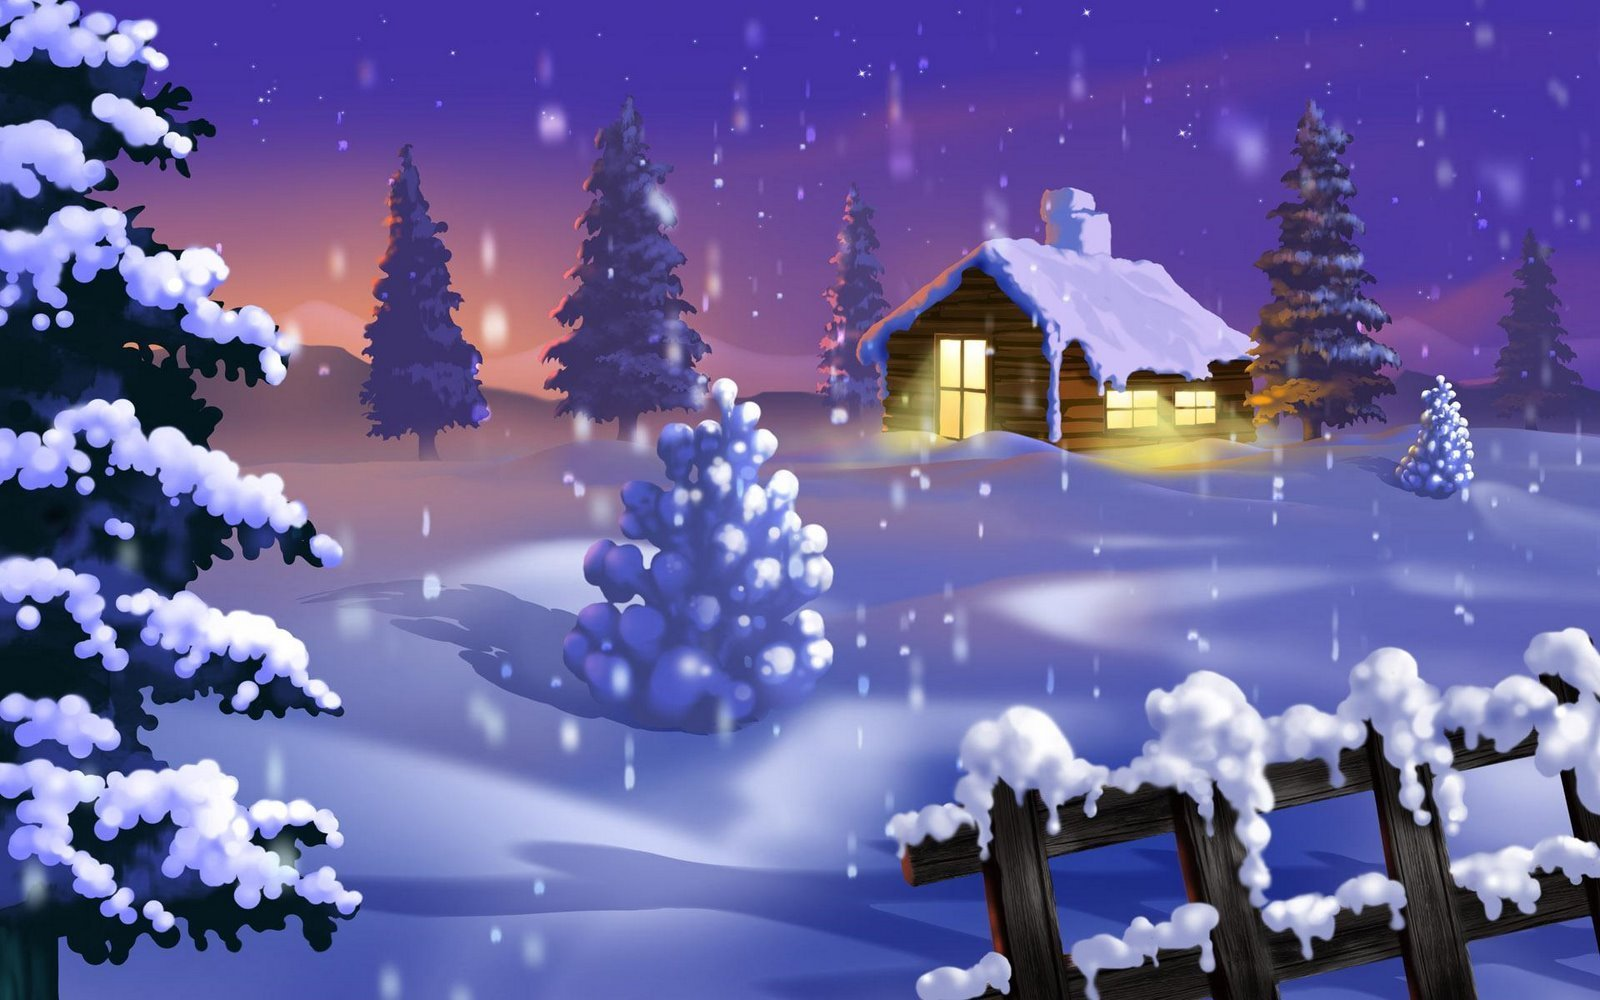 Christmas Wallpapers - Wallpapers And Pictures